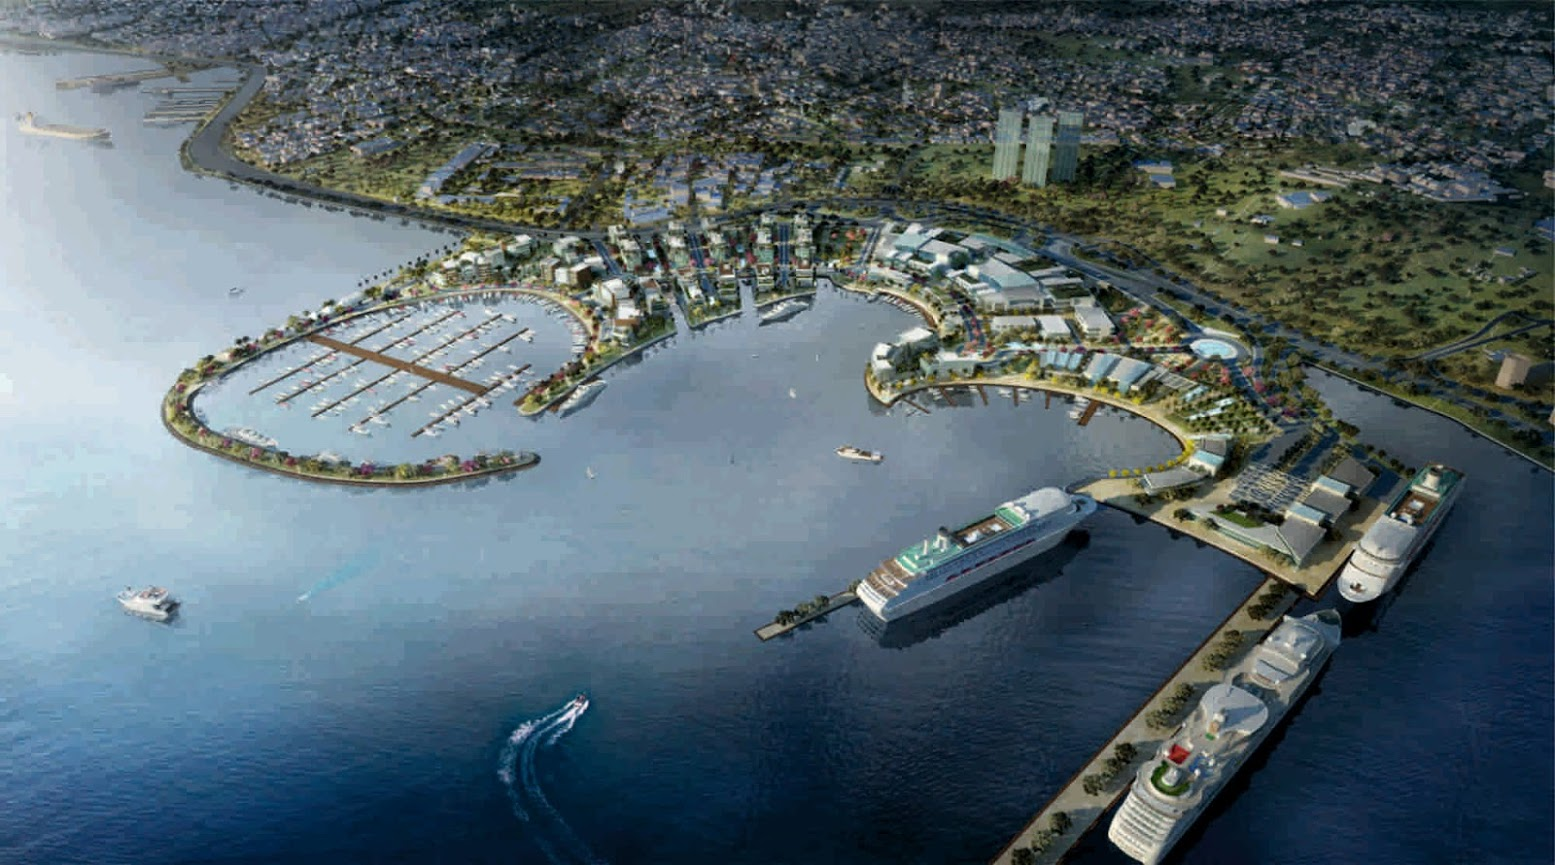 Istanbul, Turchia: [ISTANBUL SEAPORT BY 5+ DESIGN]